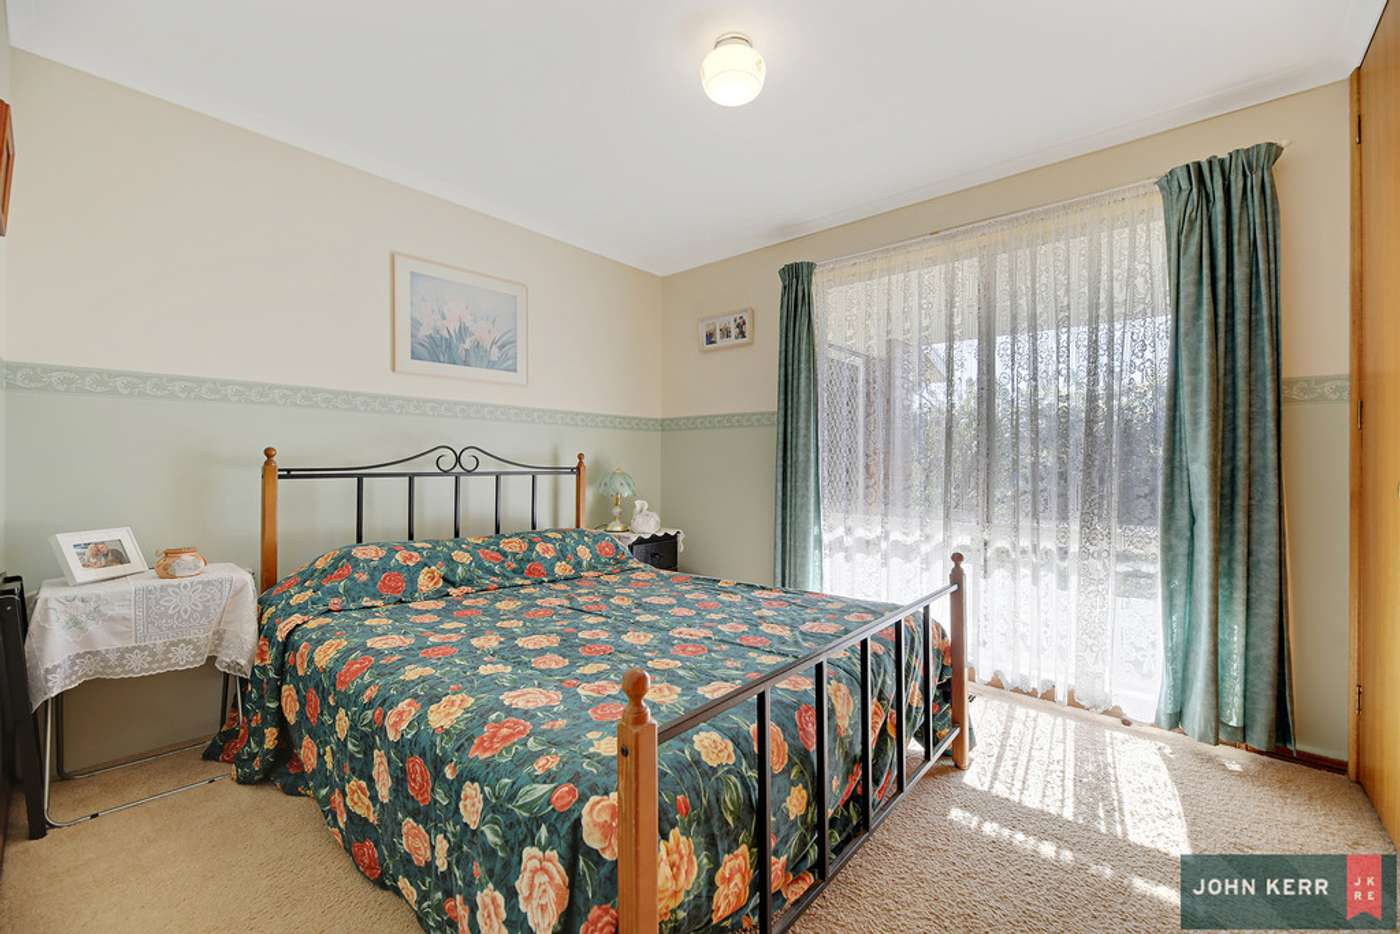 Fifth view of Homely house listing, 25 Nelson Road, Trafalgar VIC 3824